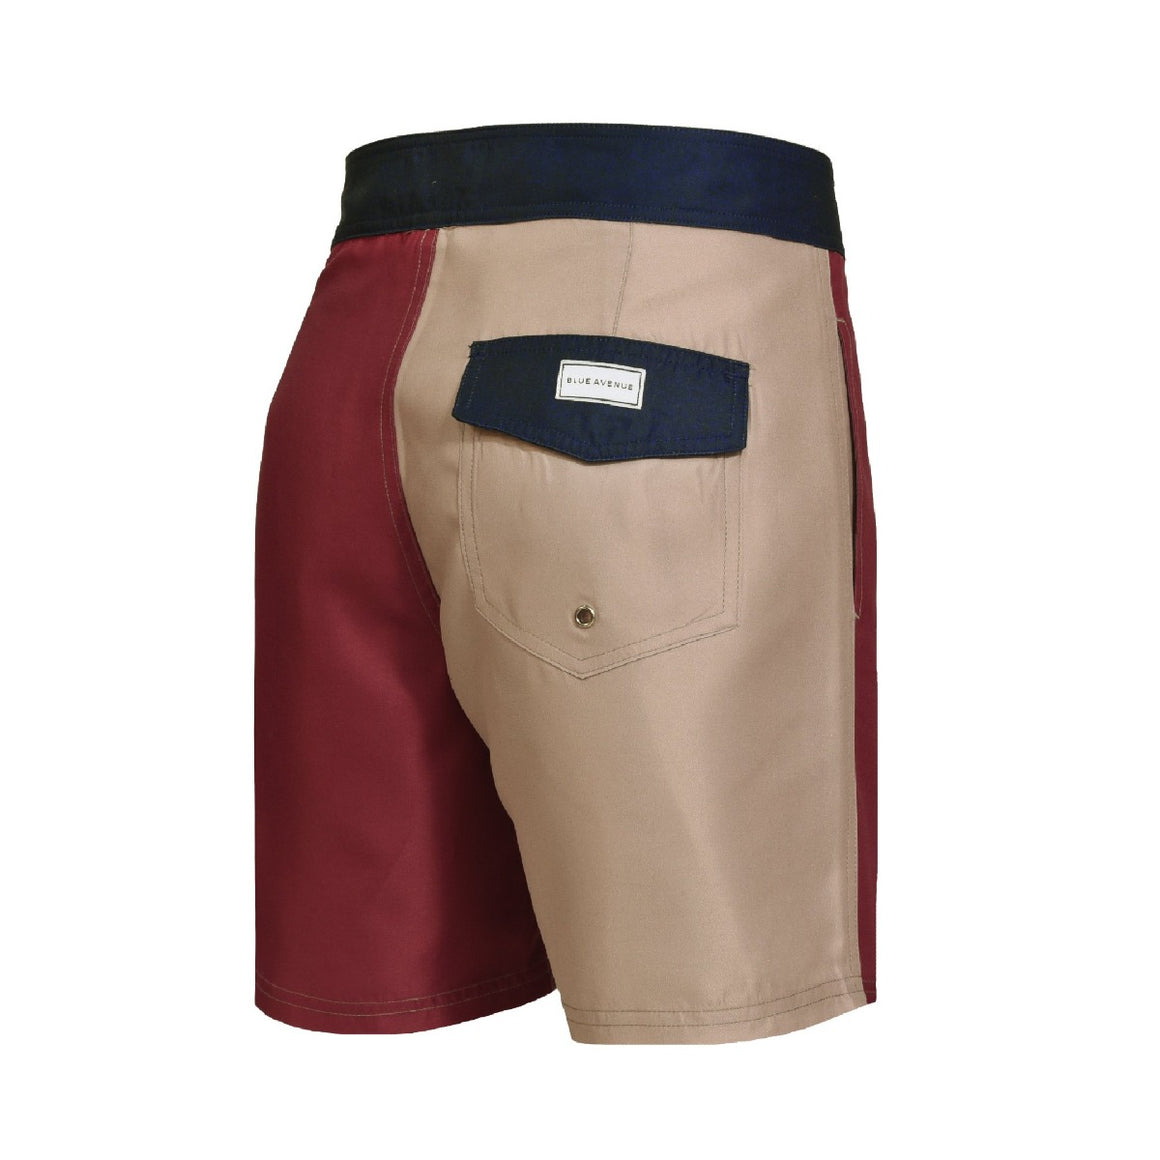 Barney Color Block Creamy Bordeaux Swim Shorts- Blue Avenue